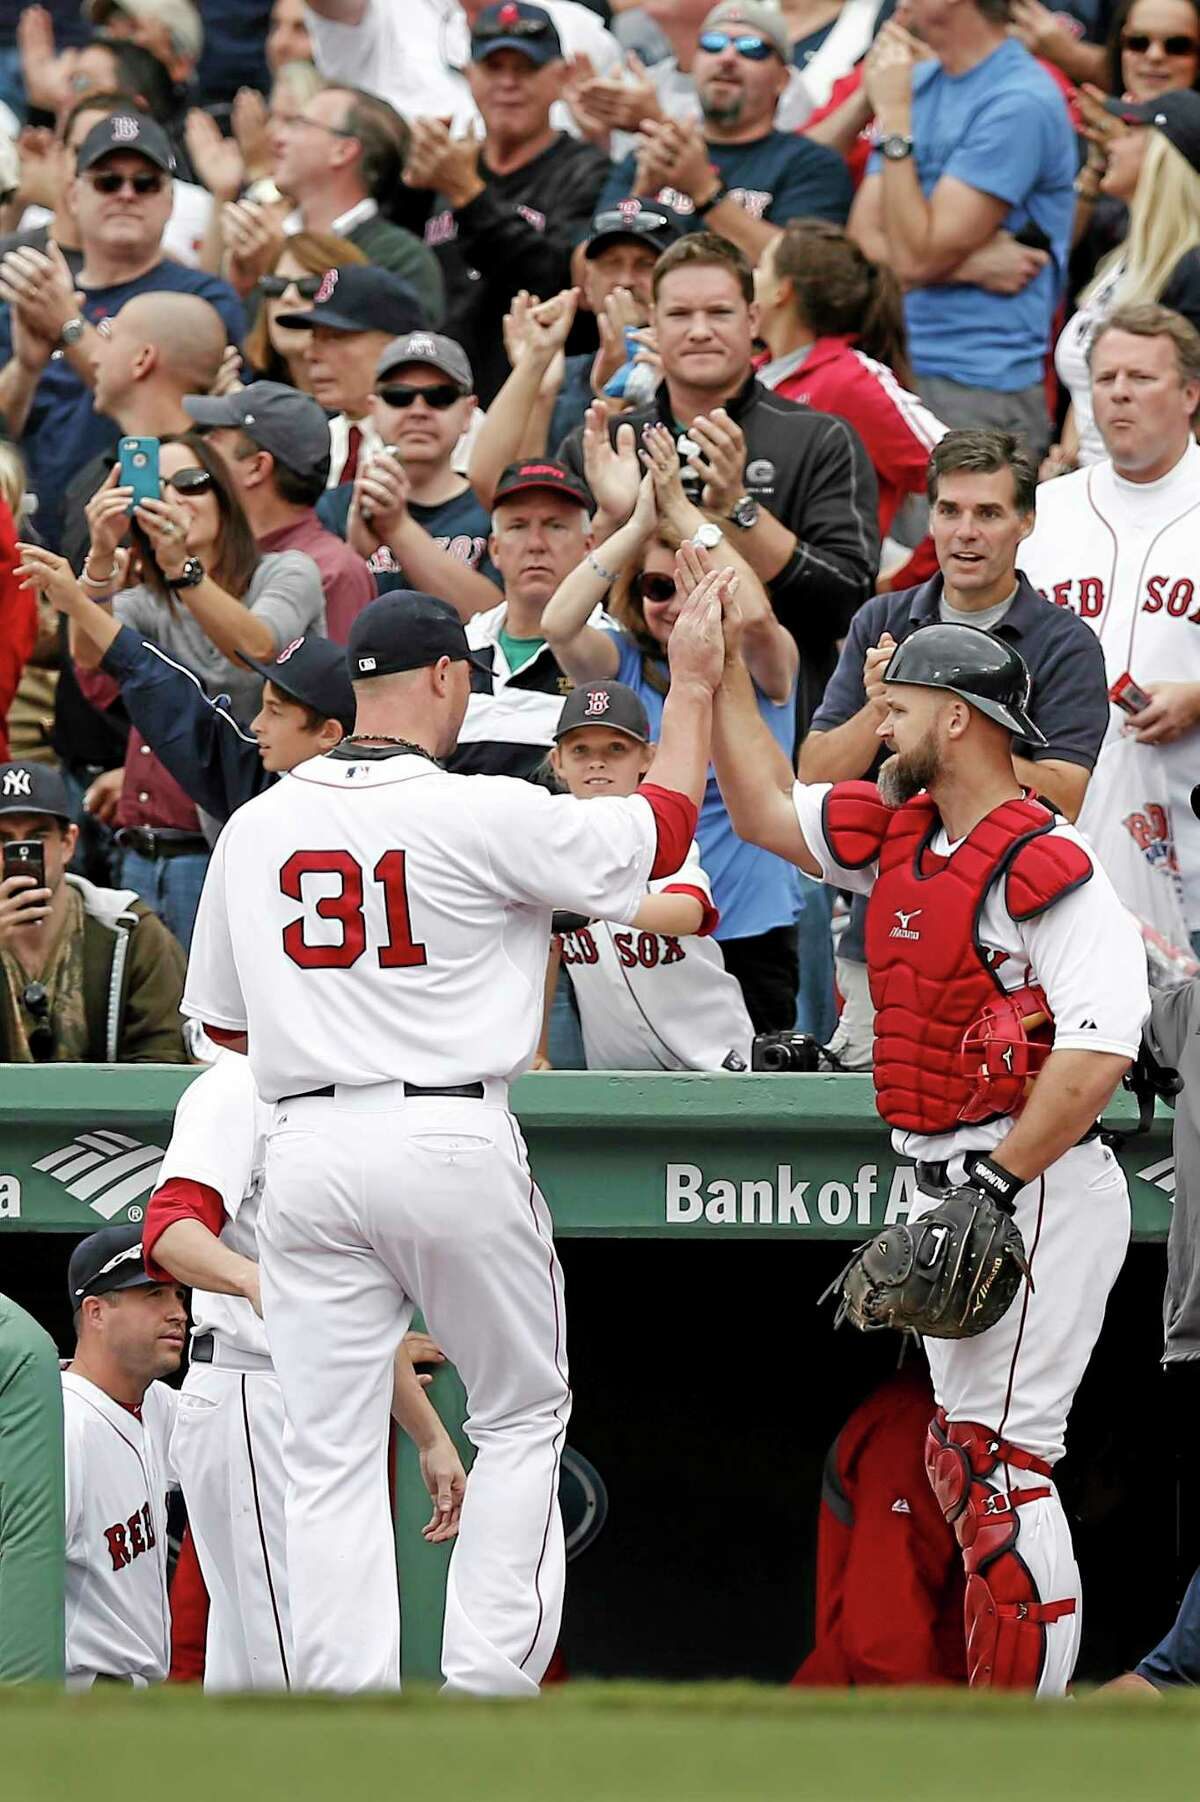 Red Sox starting pitcher Jon Lester leaves to applause as he is congratulated by catcher David Ross after the top of the eighth inning of Boston's 5-1 win over the New York Yankees Saturday at Fenway Park.